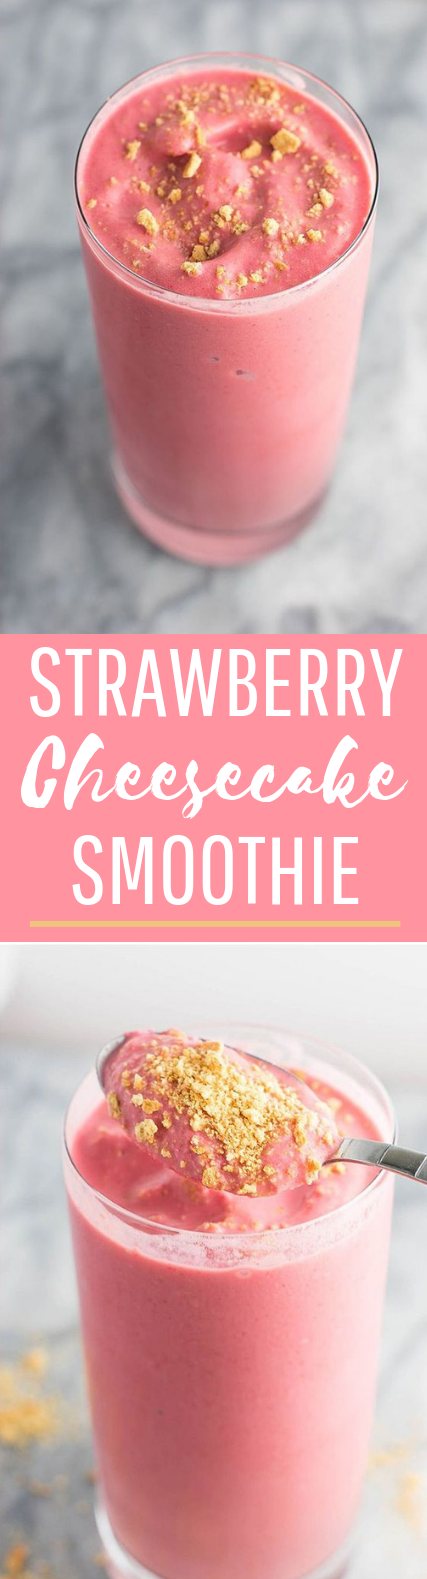 Strawberry Cheesecake Smoothie #drinks #breakfast